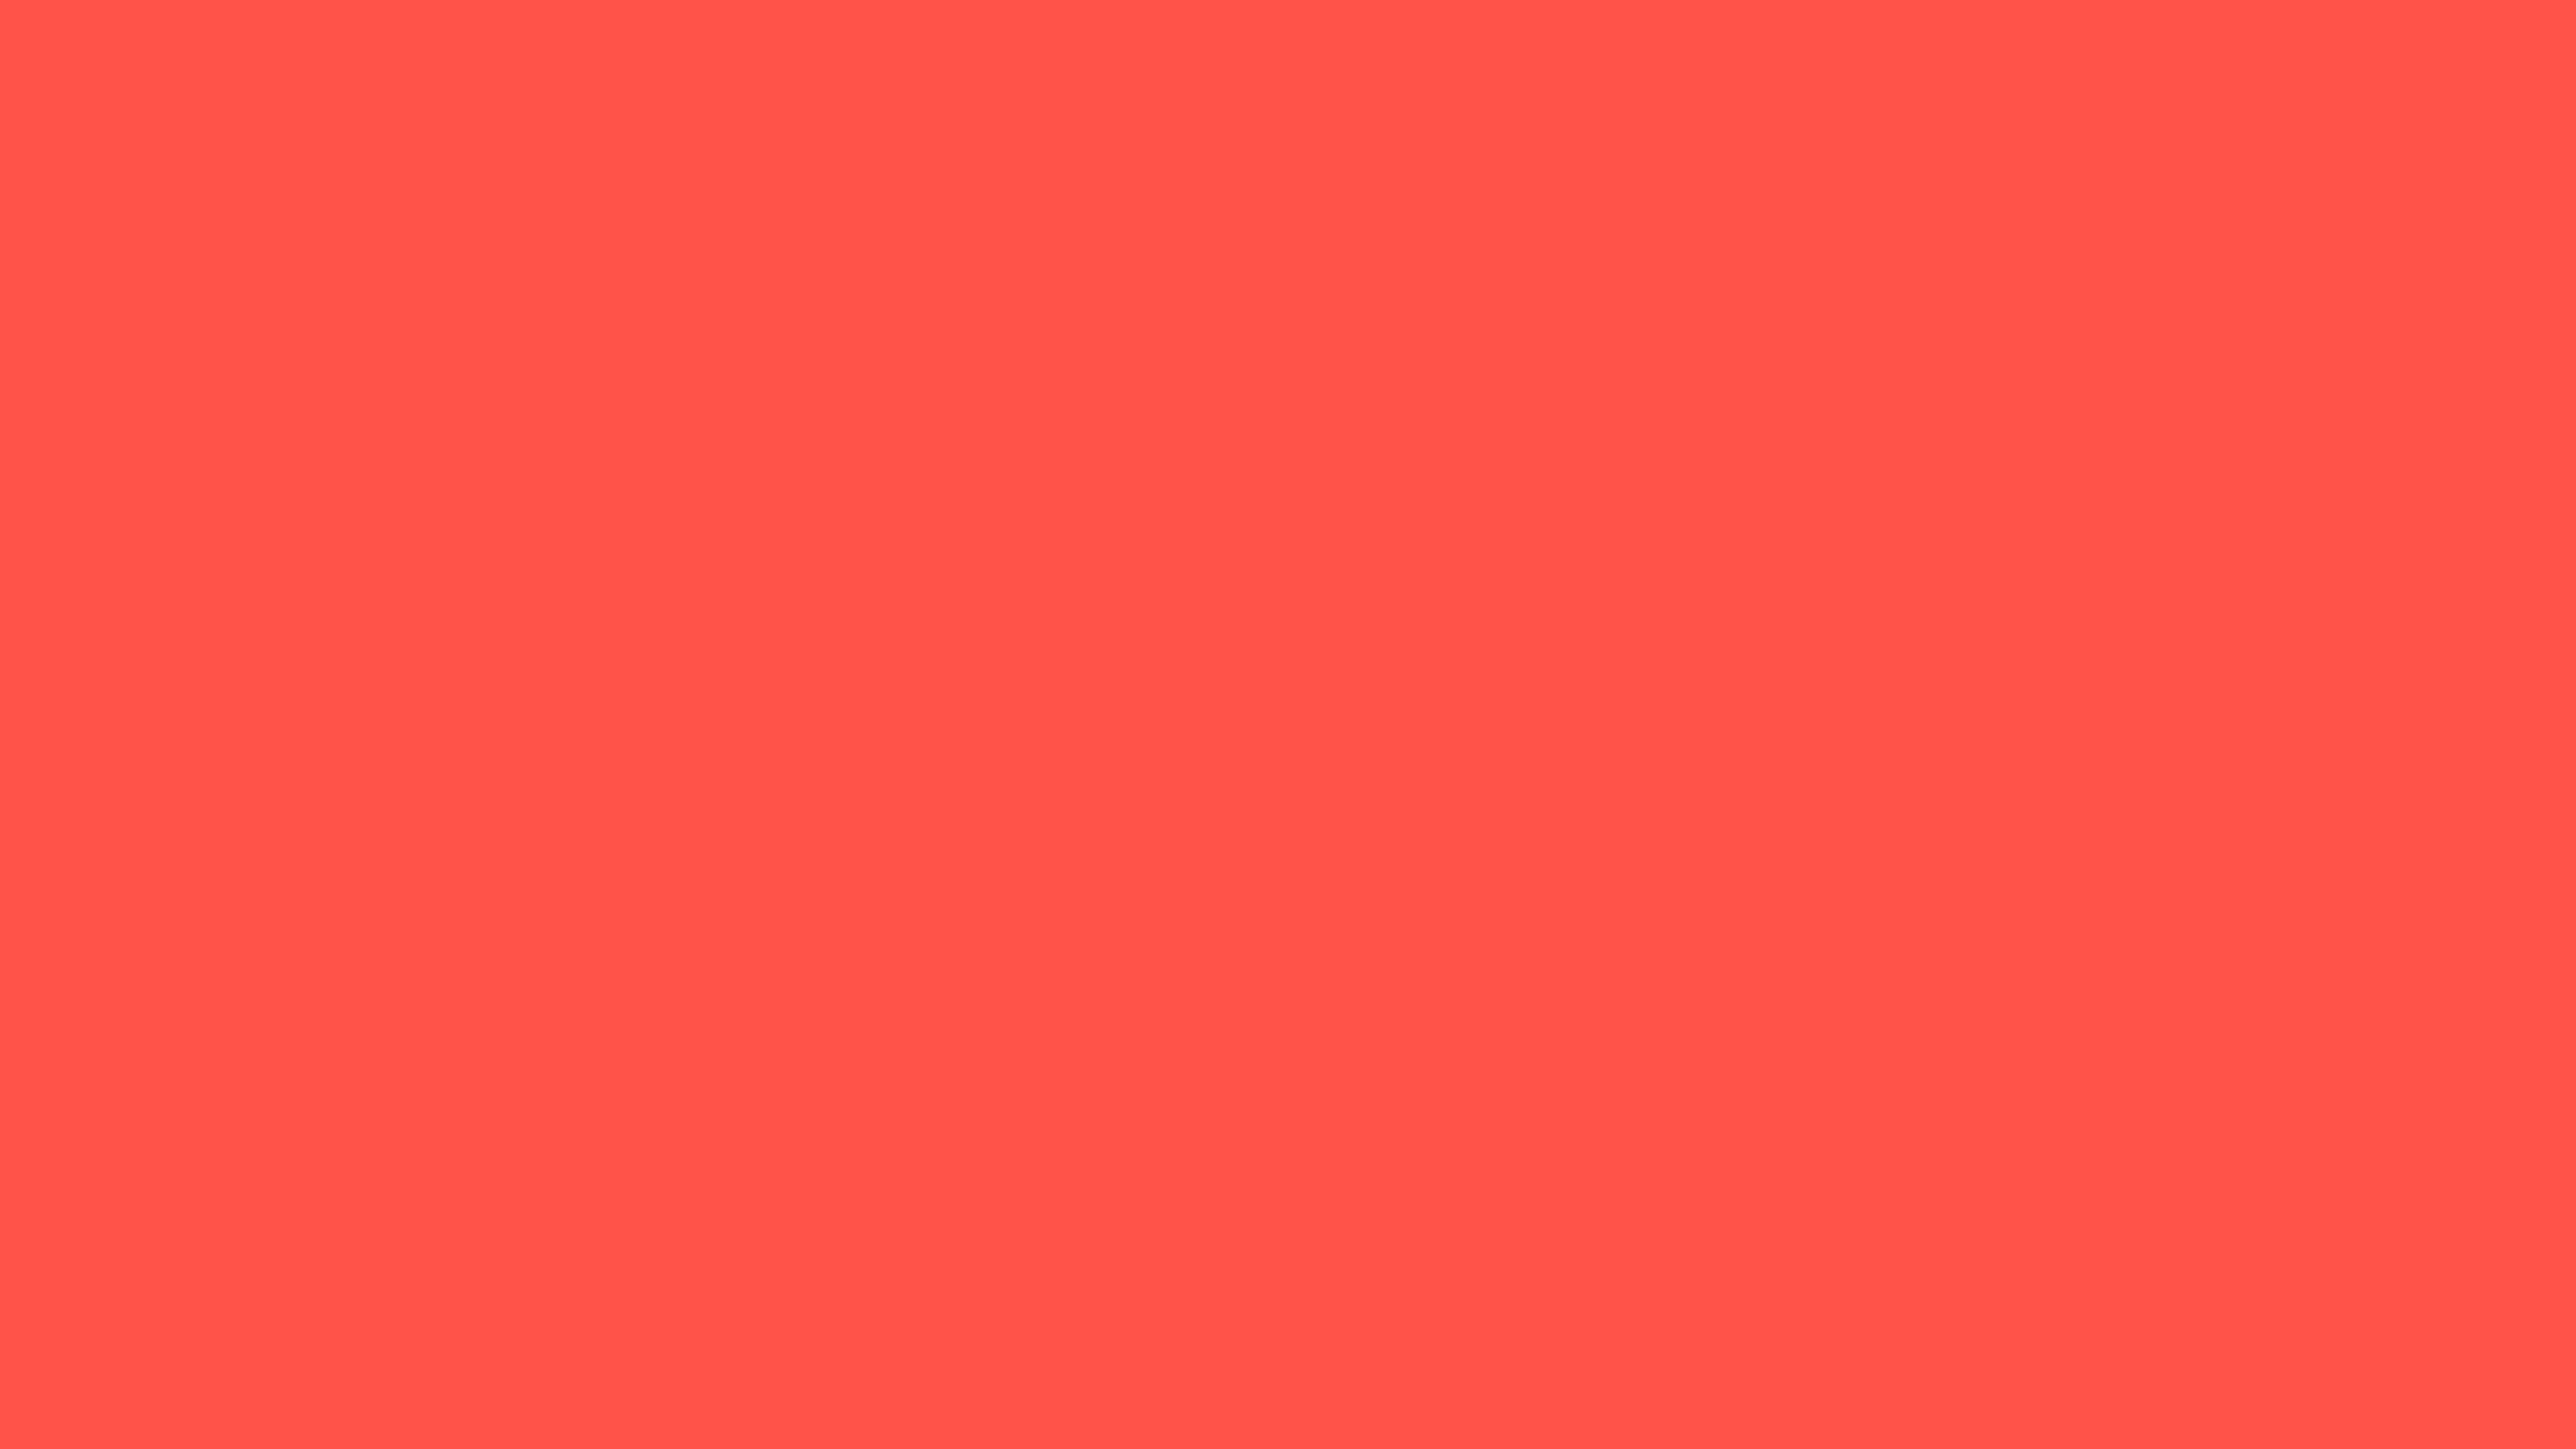 3840x2160 Red-orange Solid Color Background